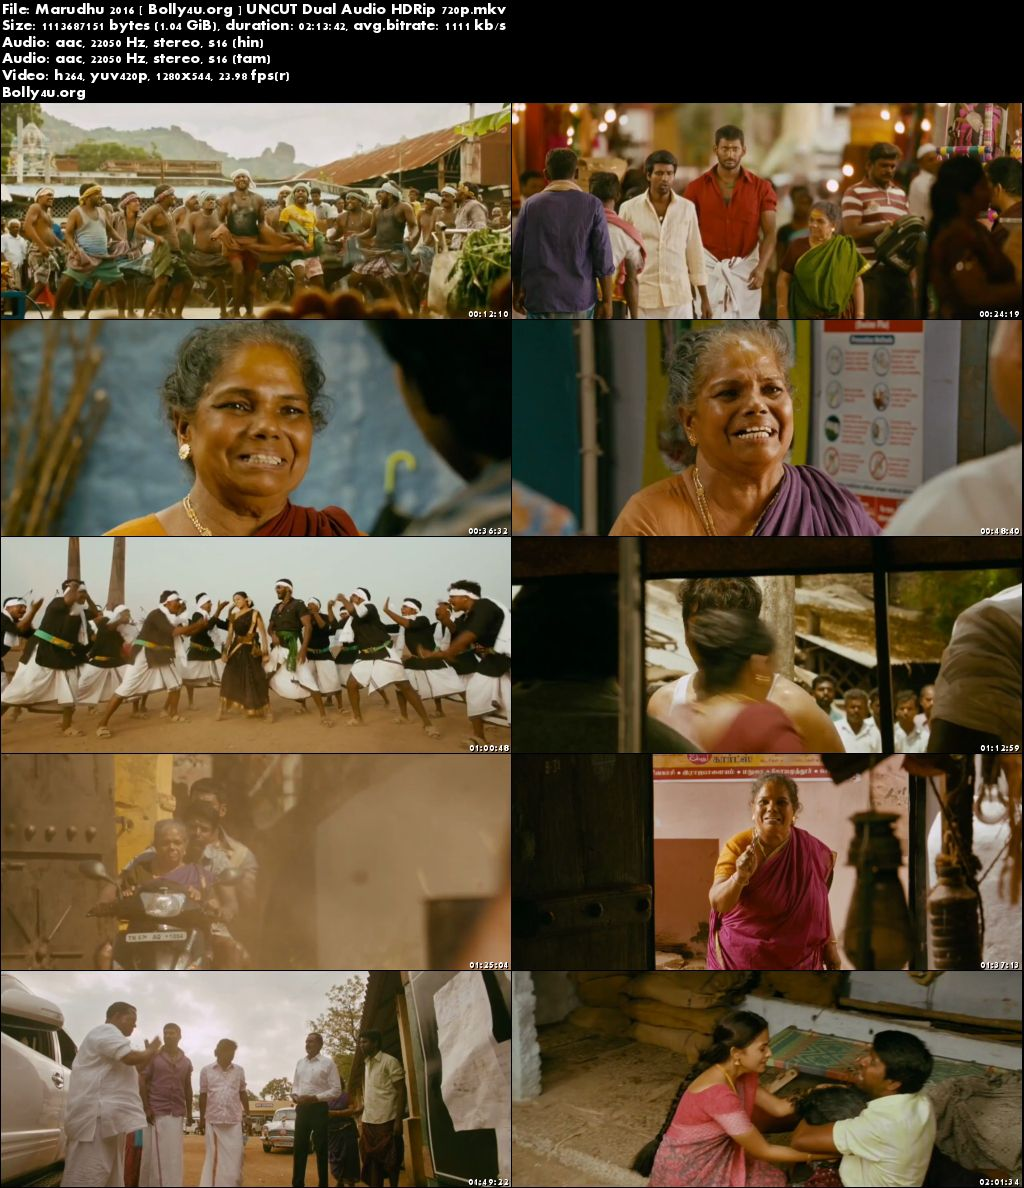 Marudhu 2016 HDRip UNCUT Hindi Dubbed Dual Audio 720p Download